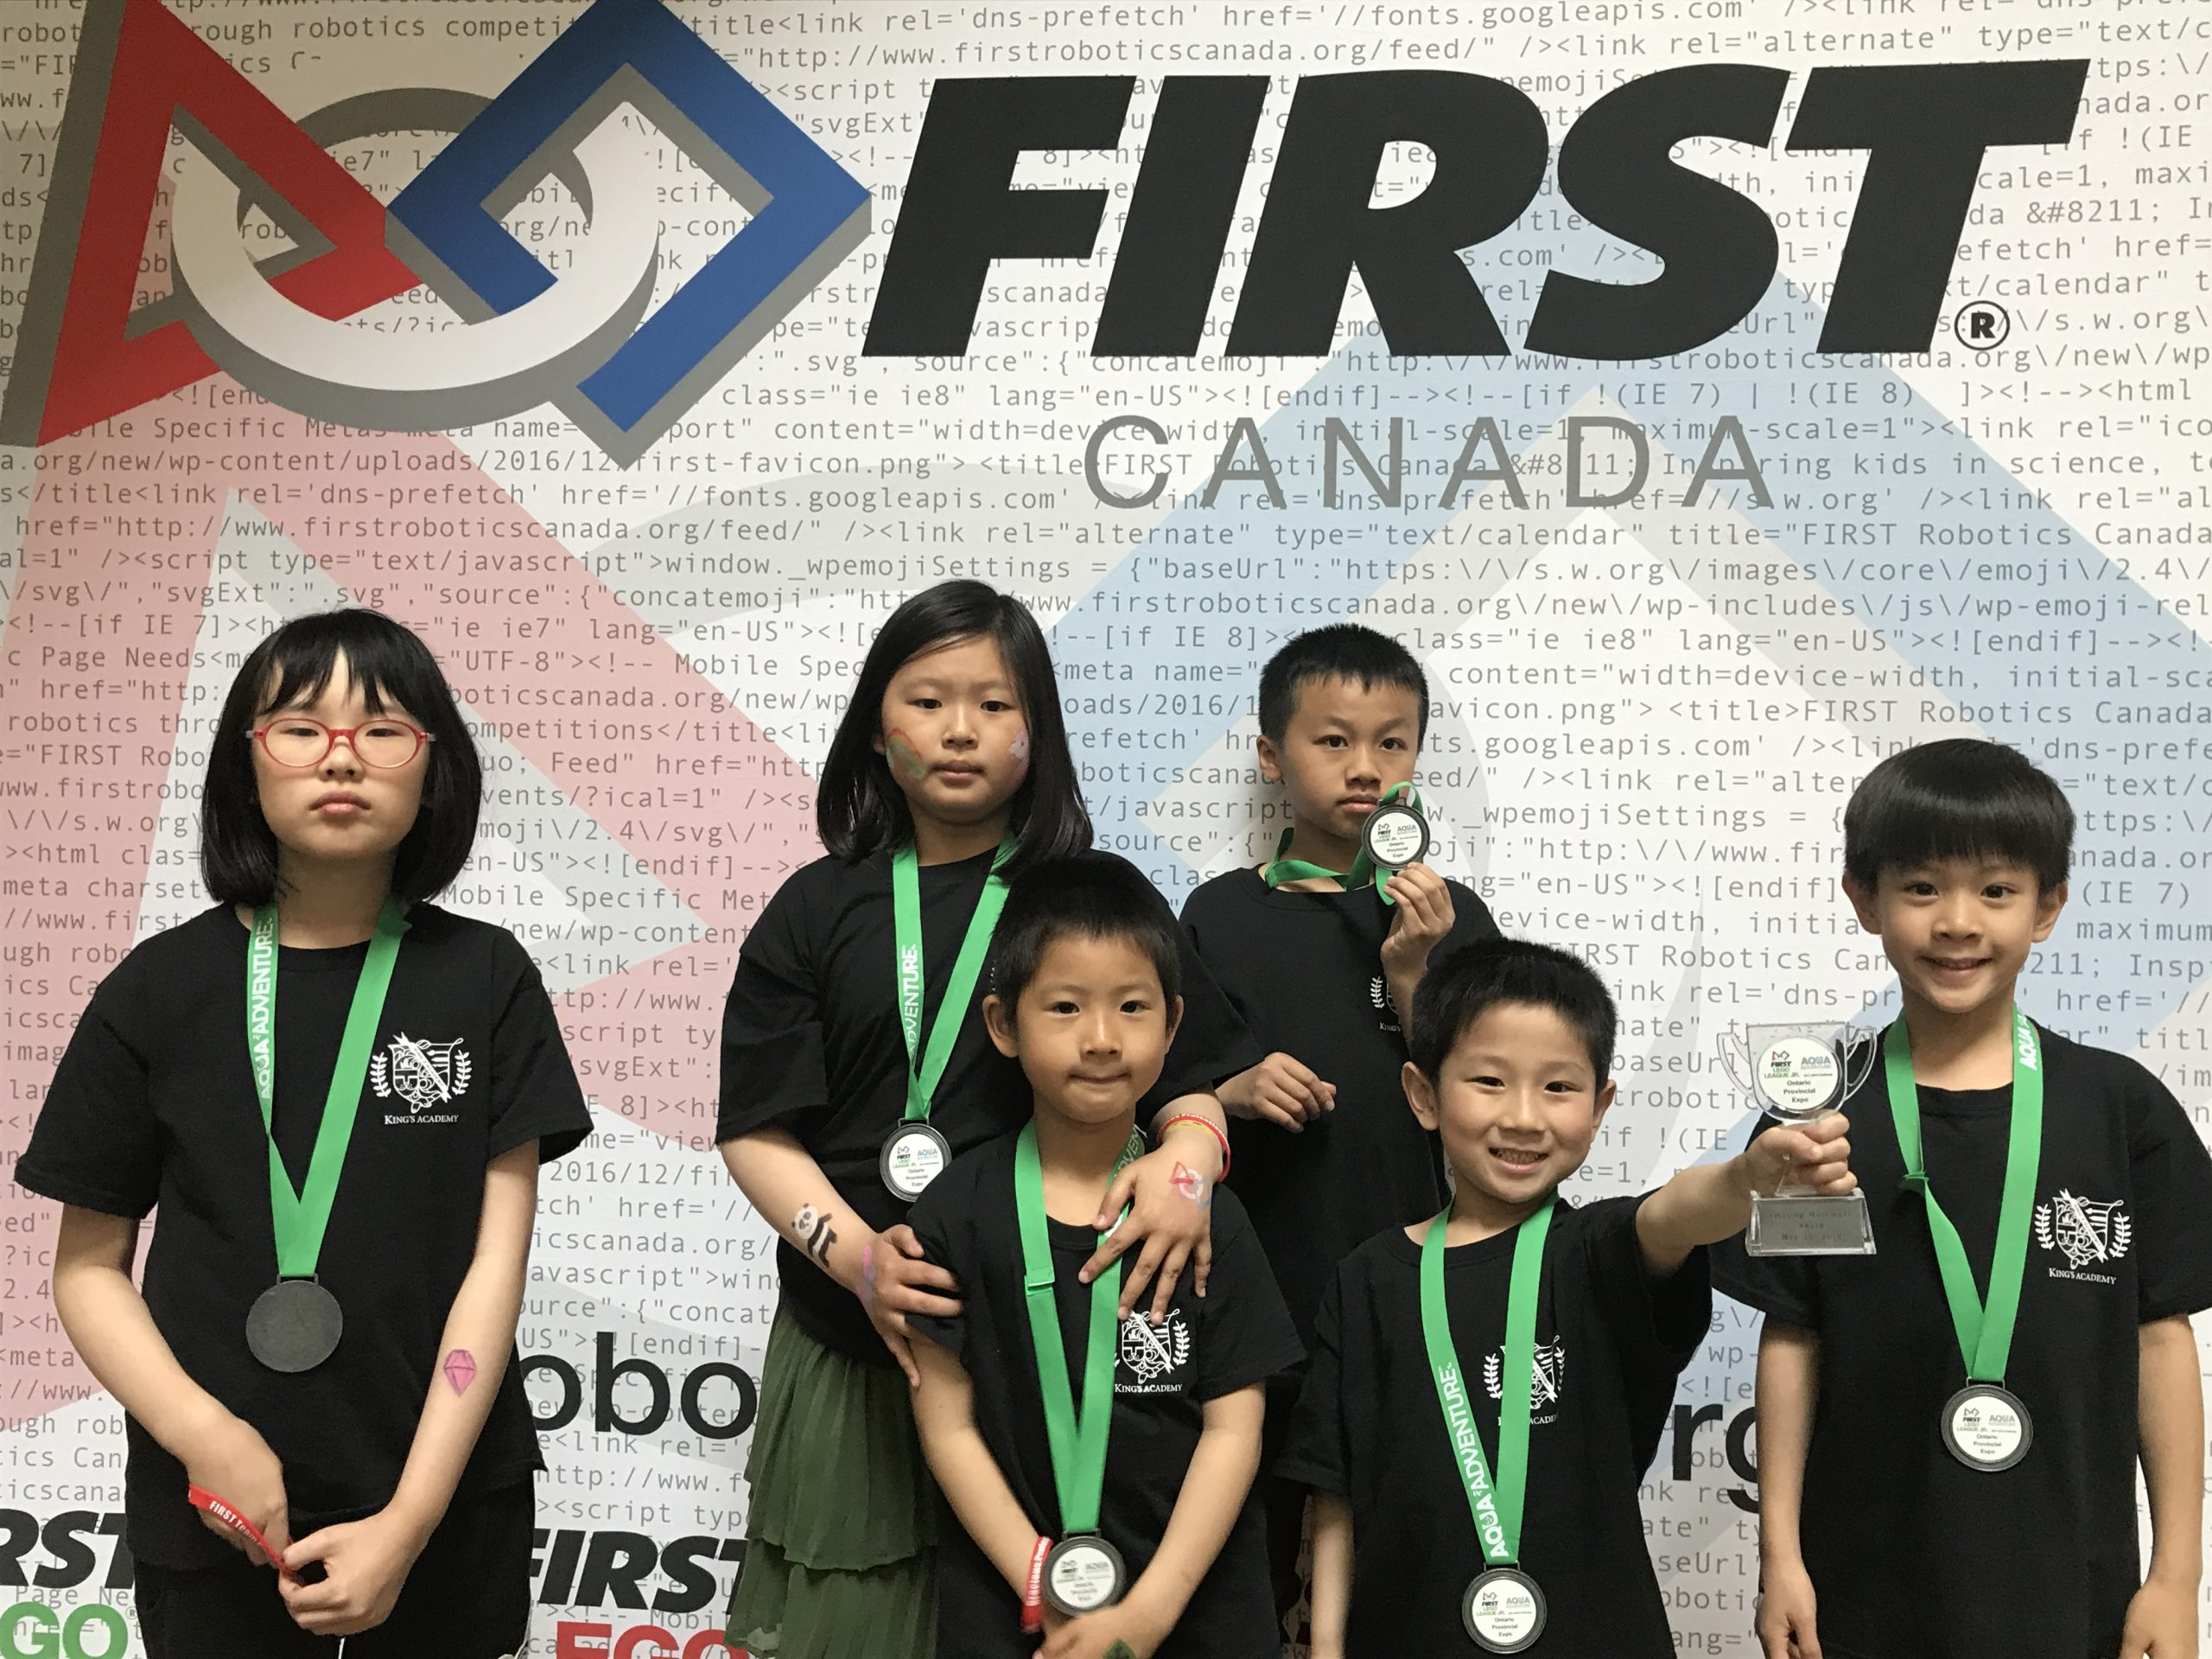 Permalink to:FIRST LEGO League jr.